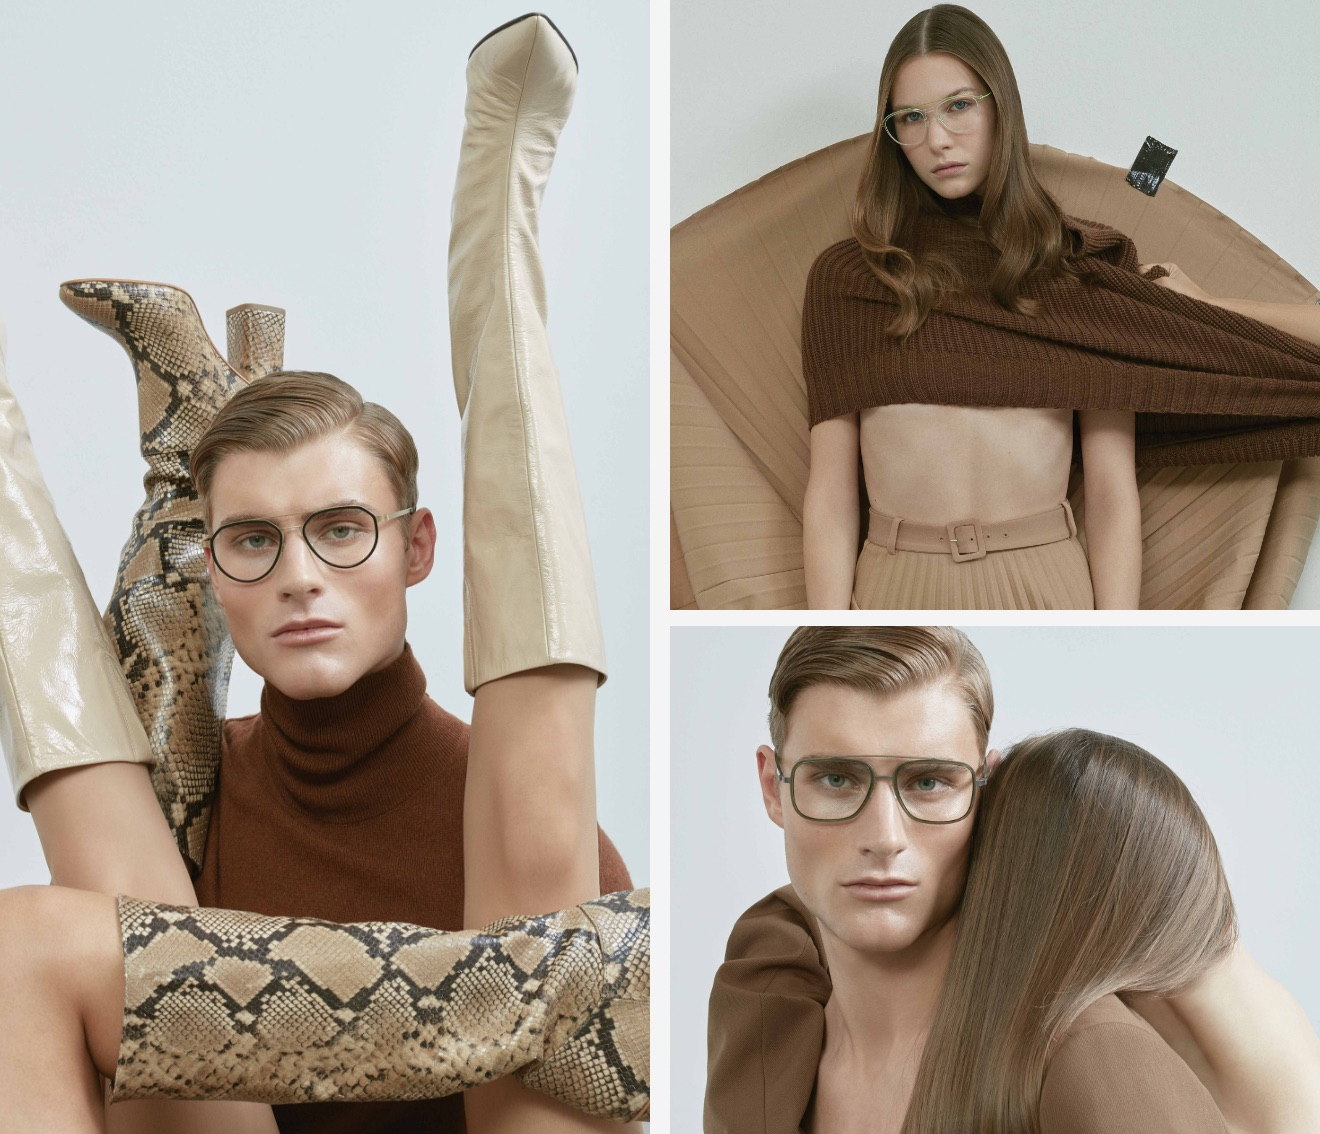 LINDBERG in 70's retro fashion shoot